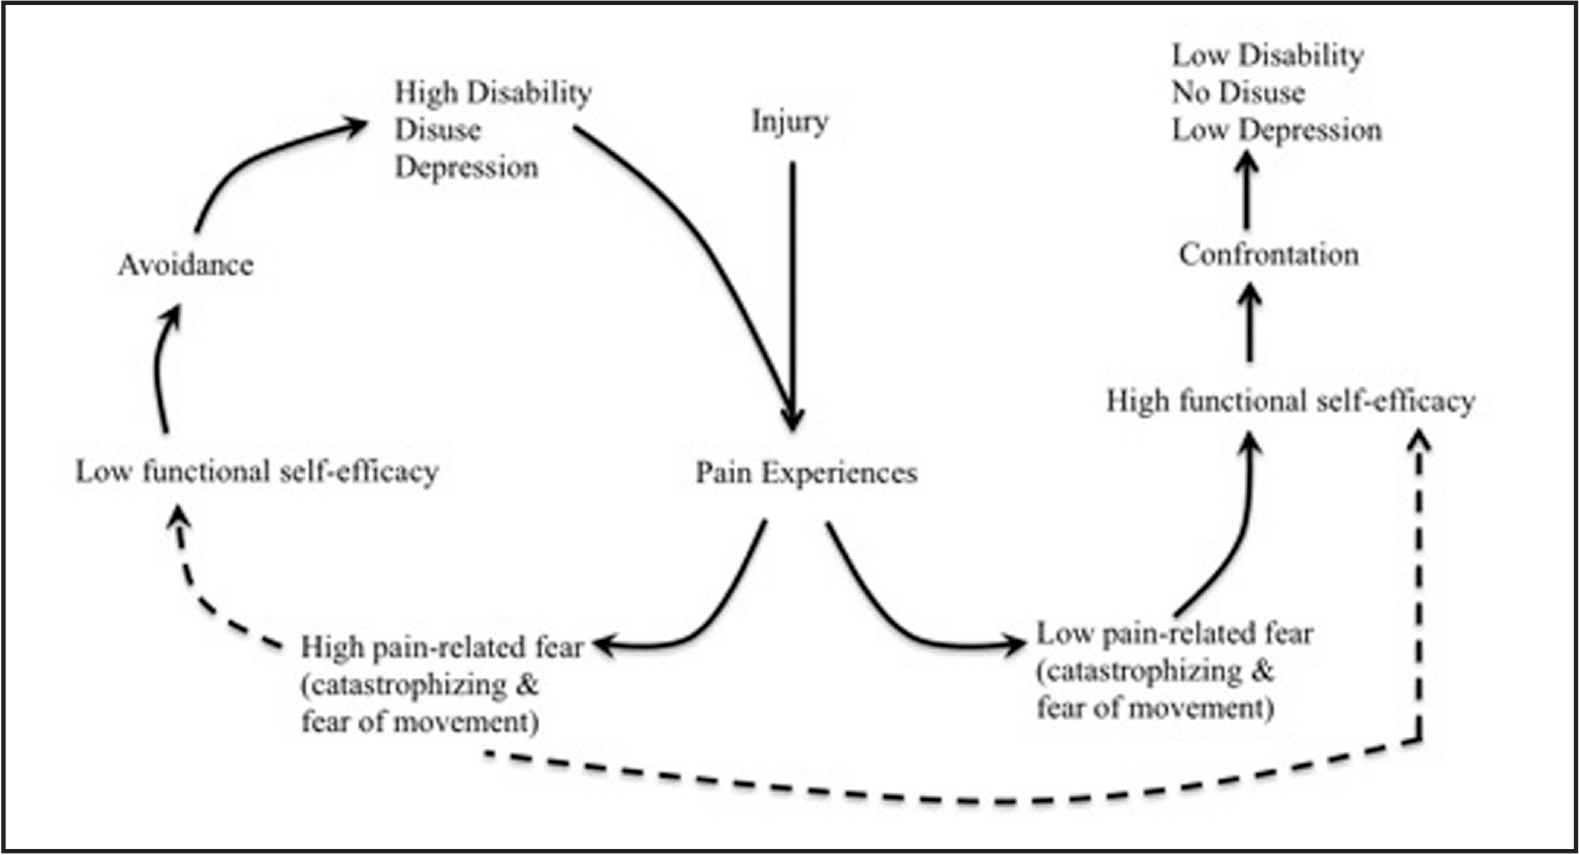 Woby's modified fear avoidance model to include self-efficacy. Reprinted with permission from Woby SR, Urmston M, Watson PJ. Self-efficacy mediates the relation between pain-related fear and outcome in chronic low back pain and disability. Eur J Pain. 2007;11:711–718.